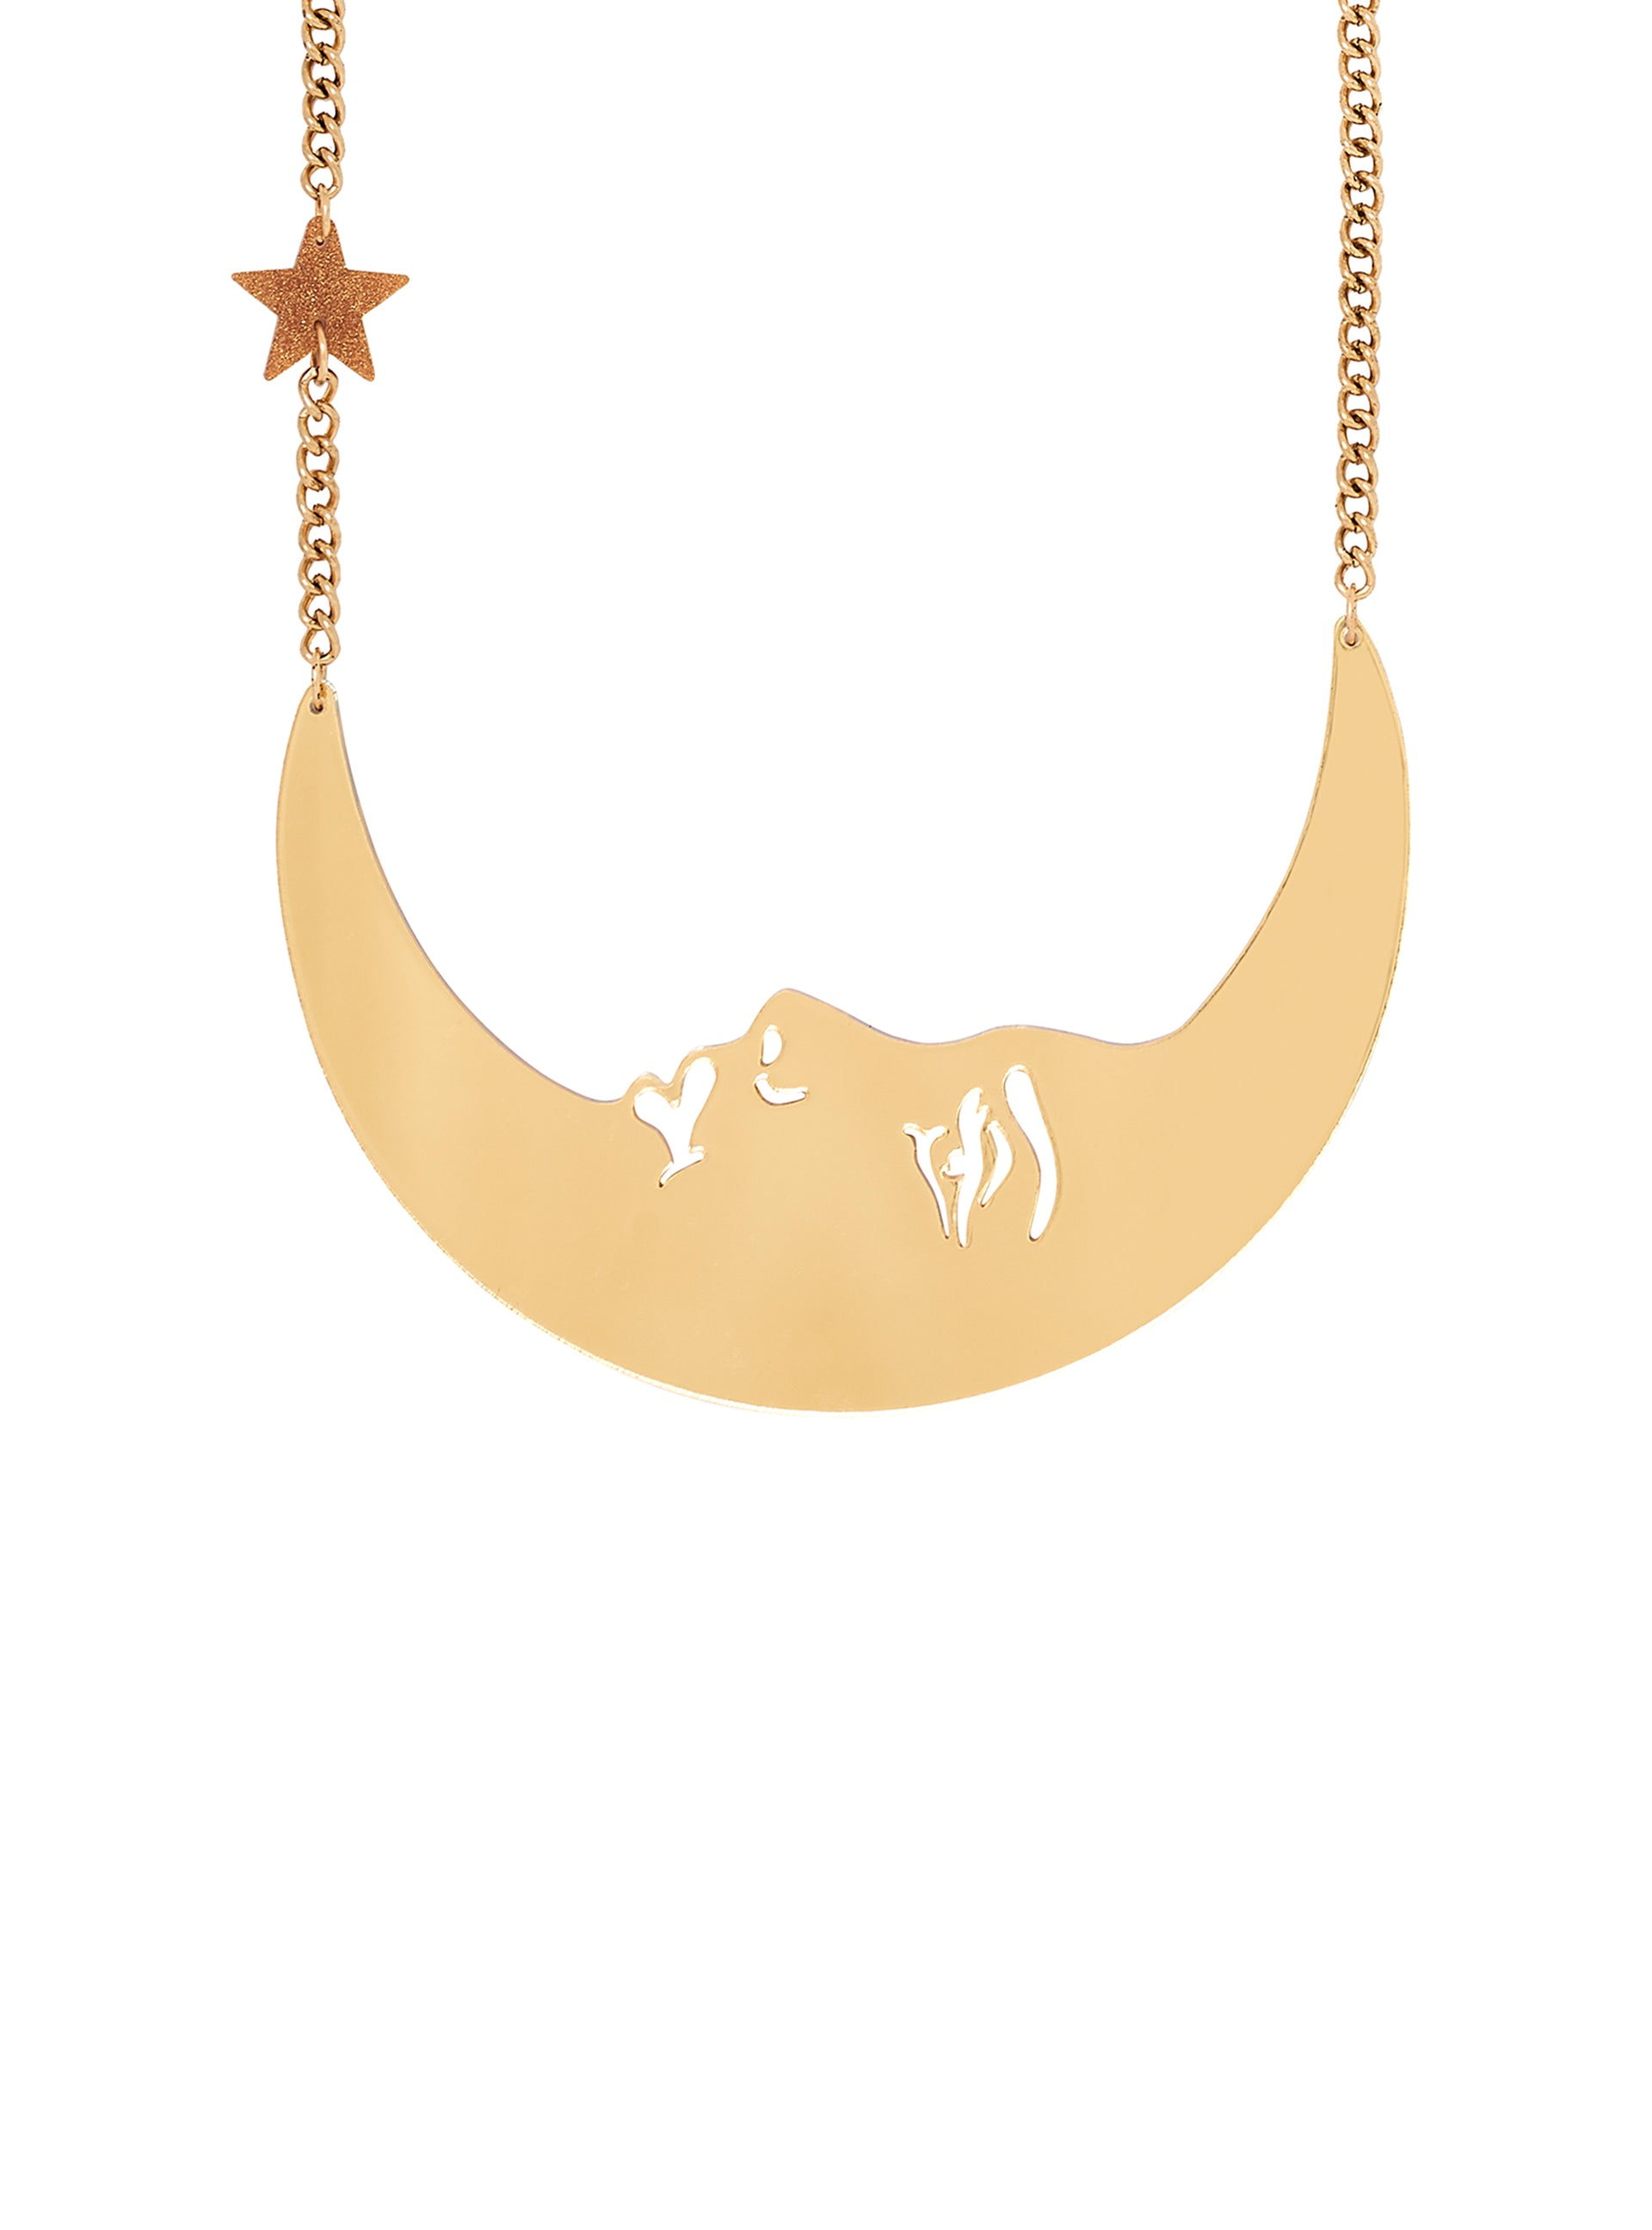 La Luna Moon Necklace - Gold